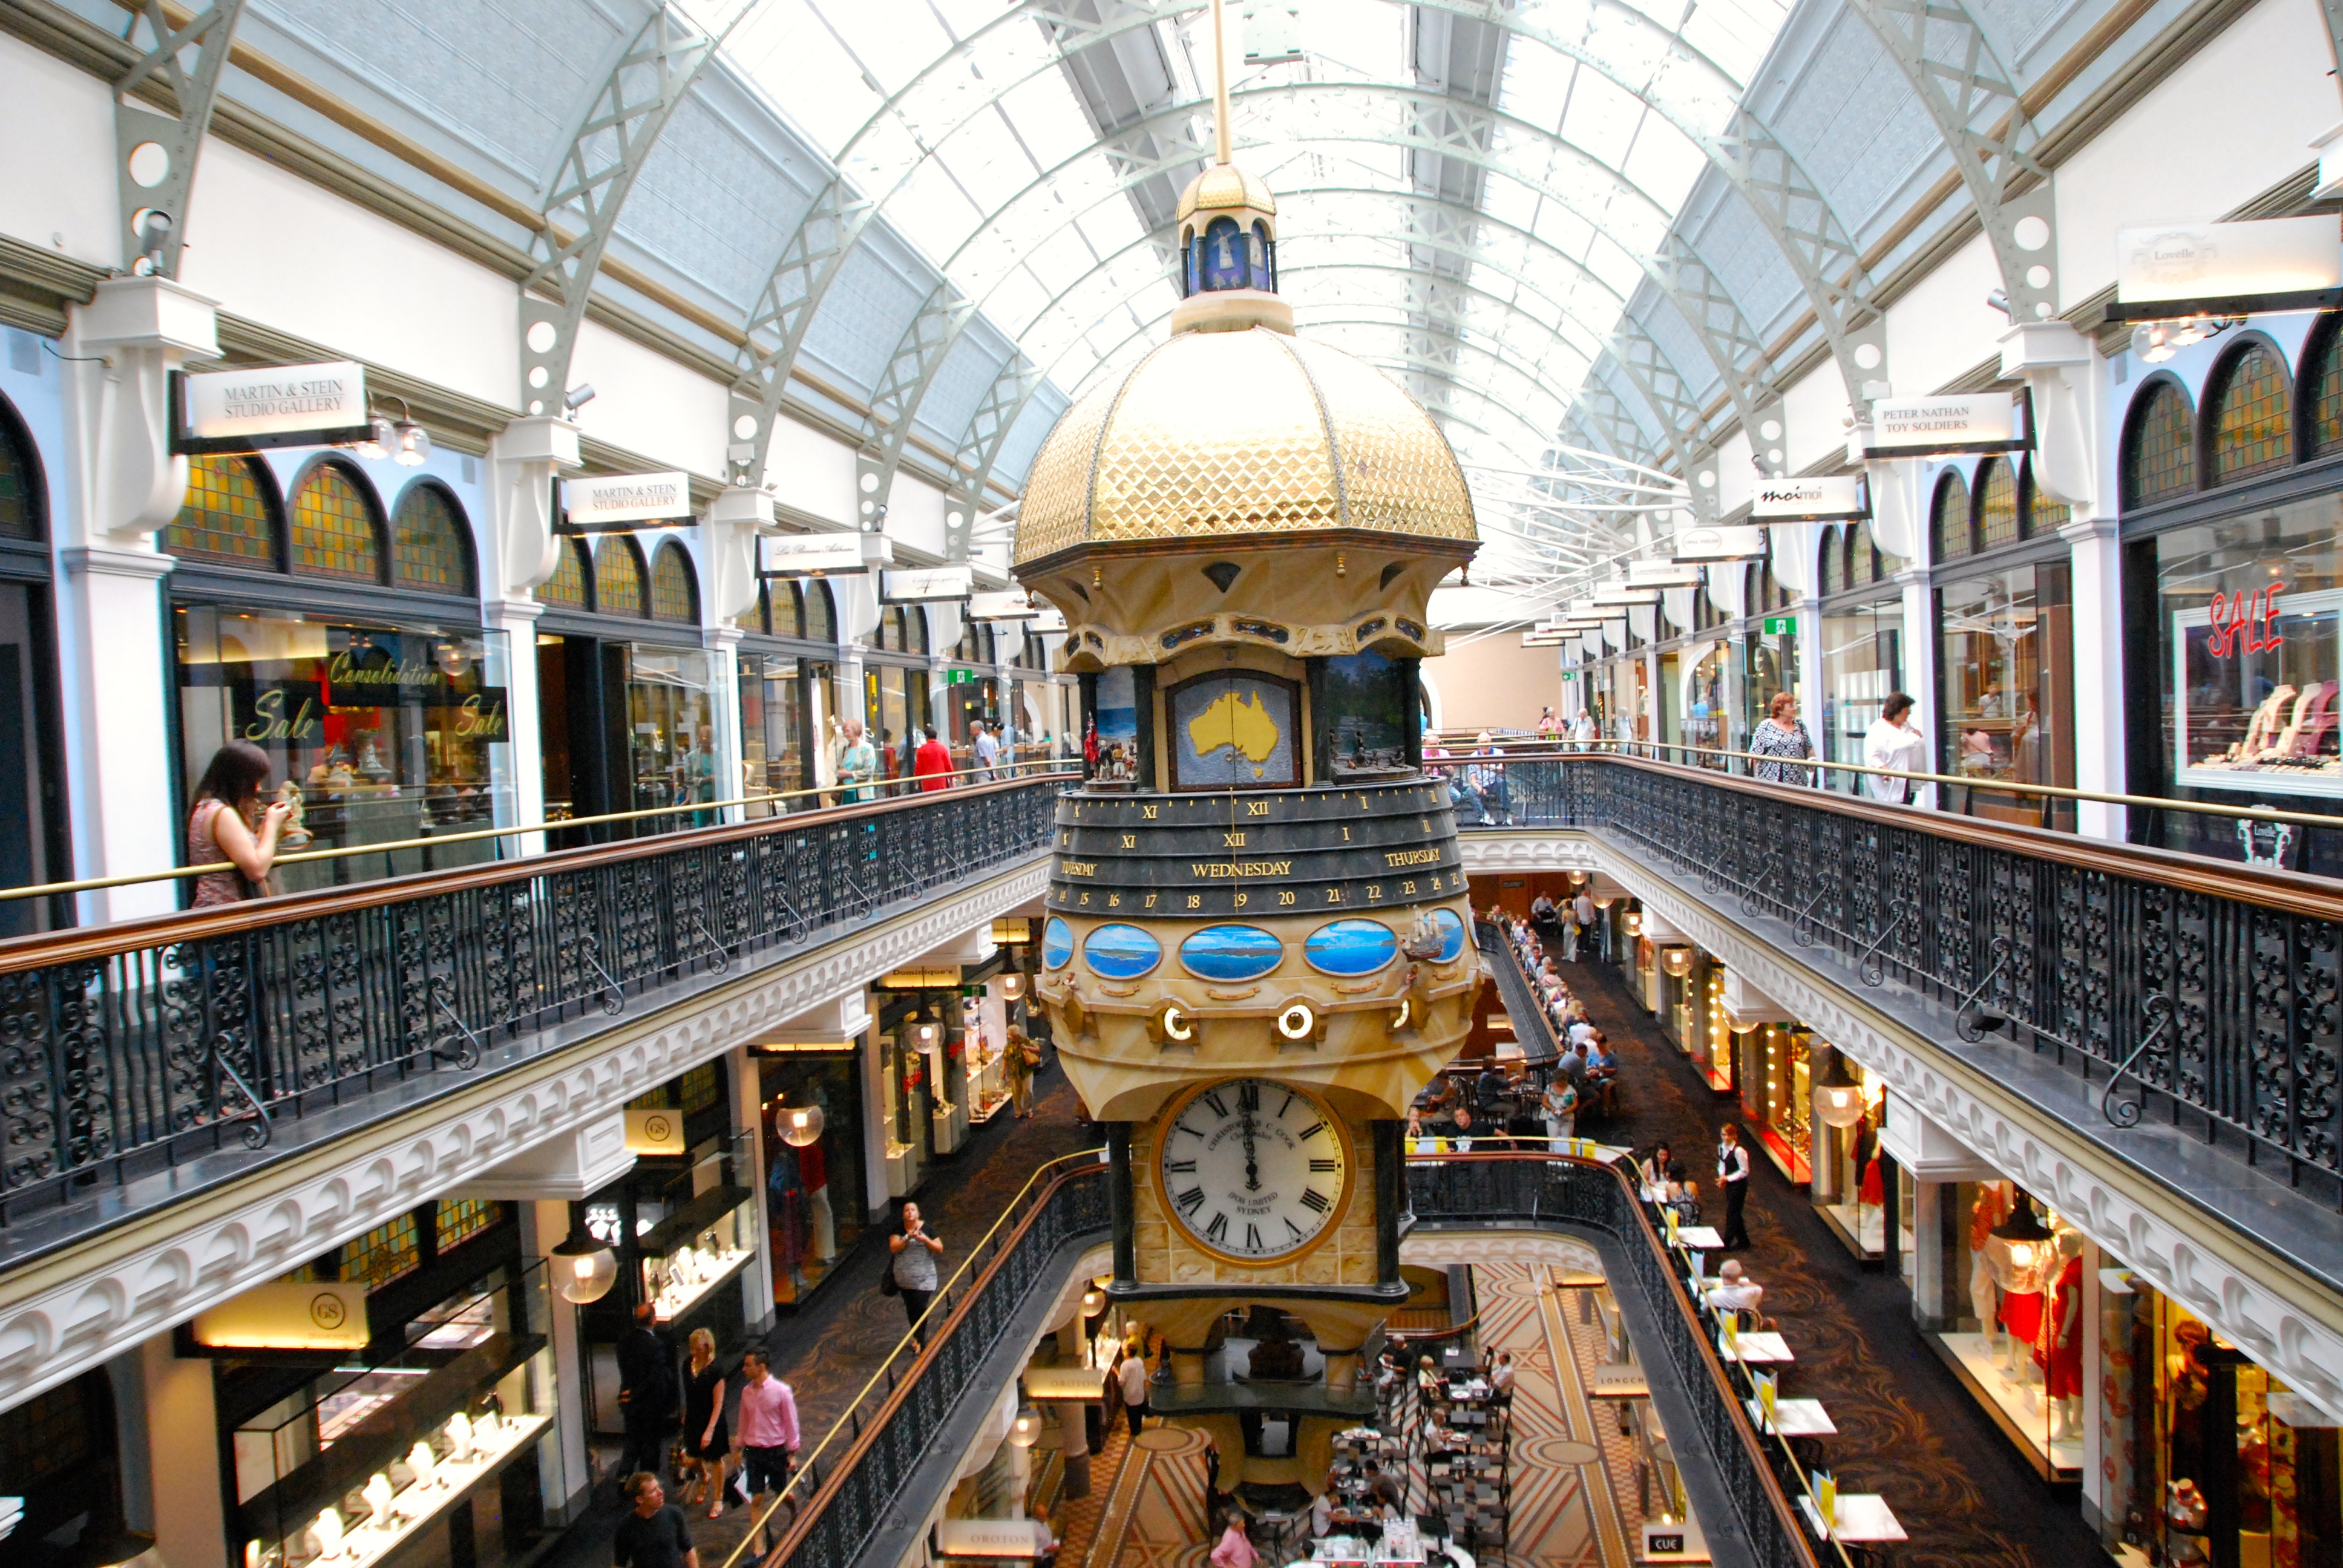 Sydney S Qvb Shopping Centre A Glass Half Full